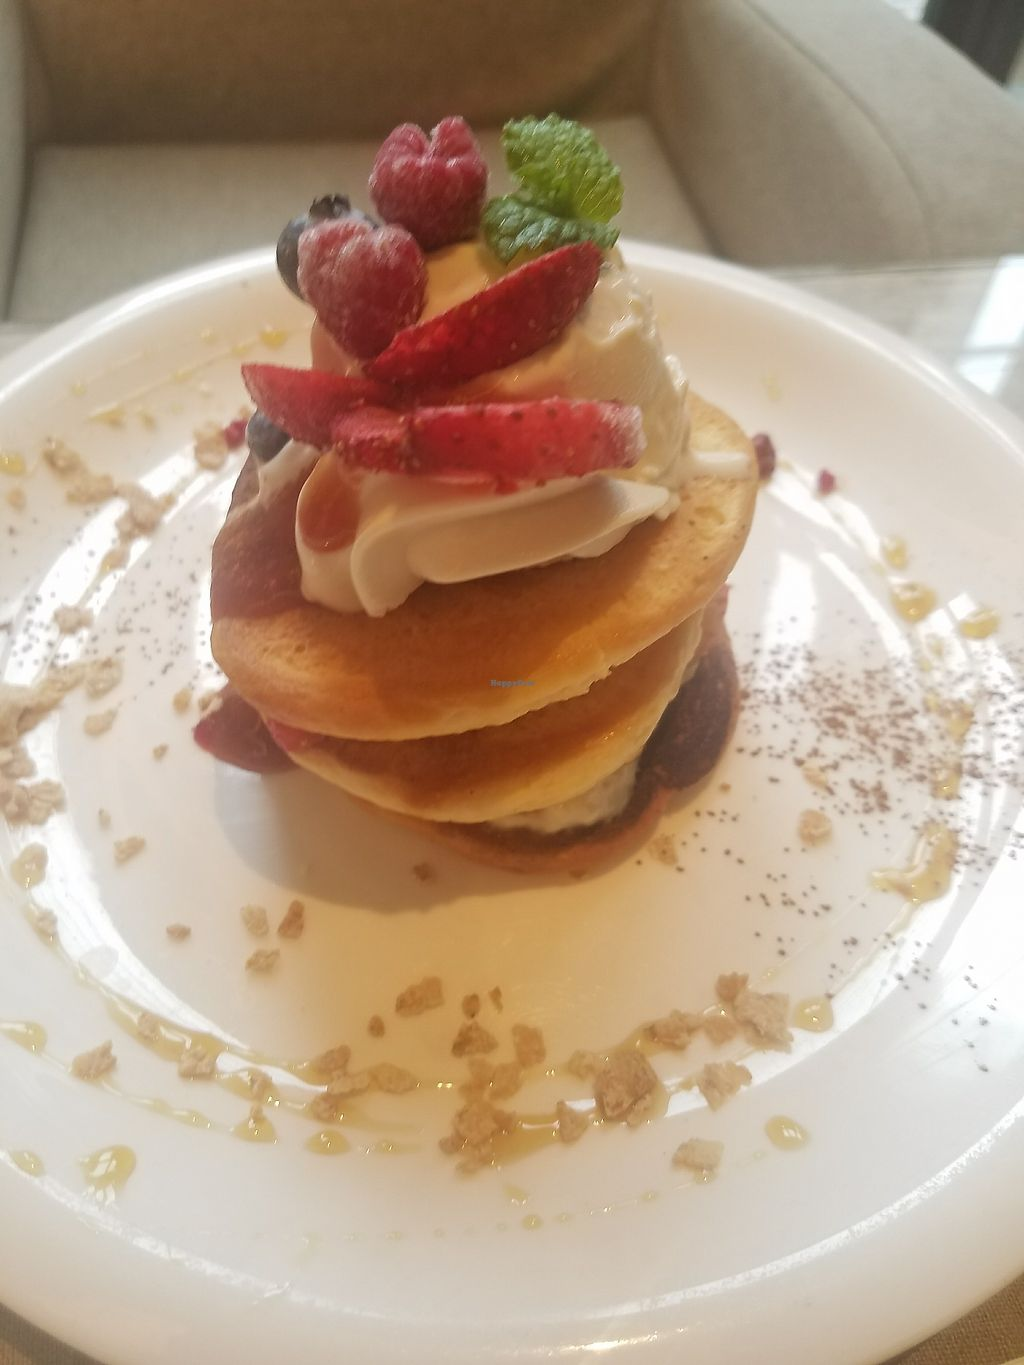 """Photo of Mumokuteki Cafe and Foods  by <a href=""""/members/profile/ReiAmber"""">ReiAmber</a> <br/>pancakes <br/> May 8, 2018  - <a href='/contact/abuse/image/15812/396997'>Report</a>"""